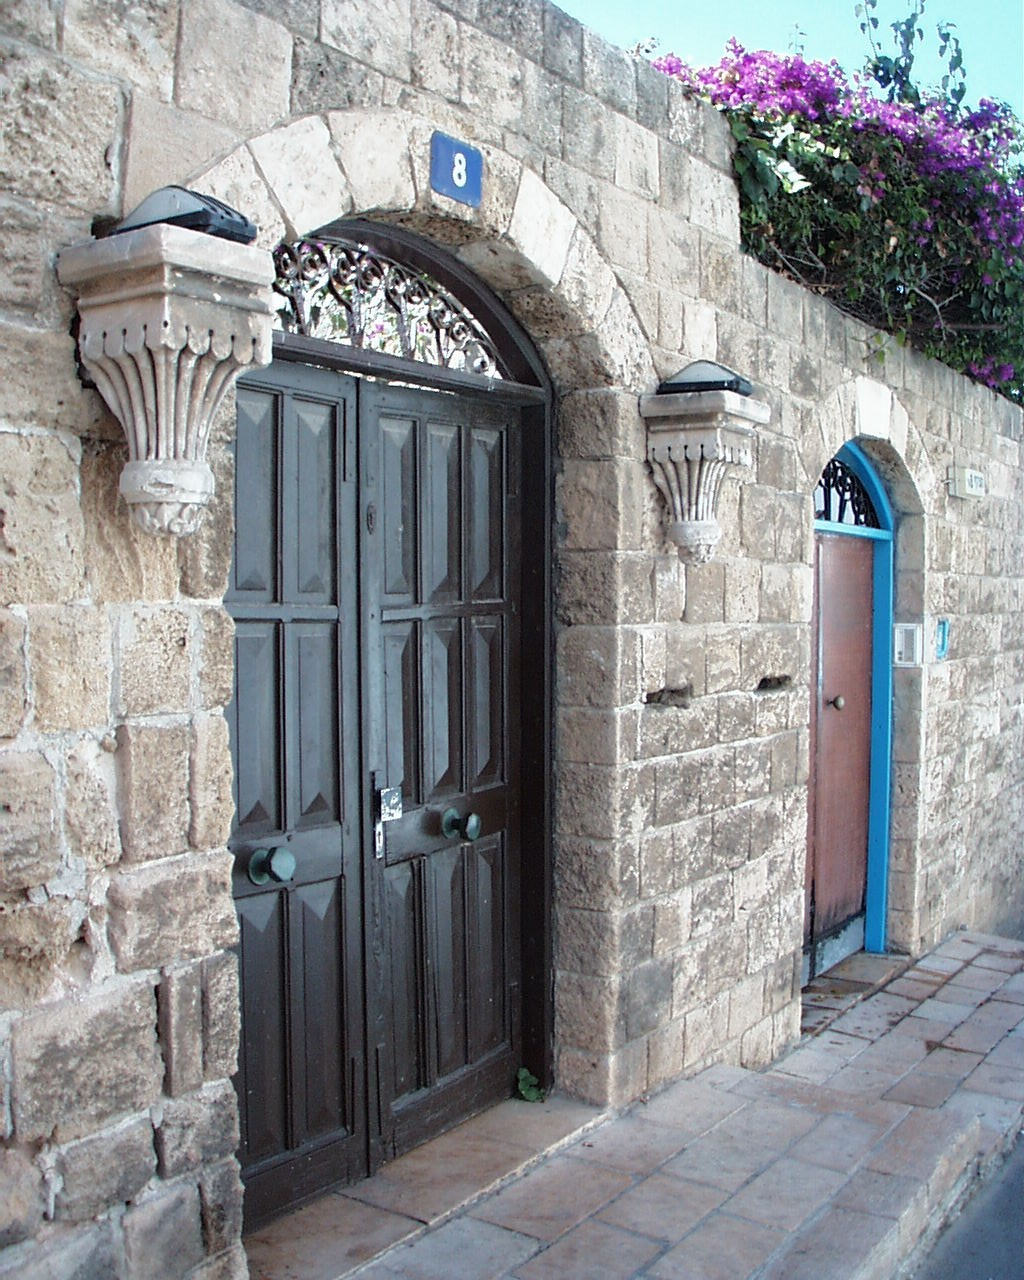 Jaffa - يافا : The Arched Doorway Of A <b>STOLEN/LOOTED</b> Palestinian House In Jaffa #2, 2001